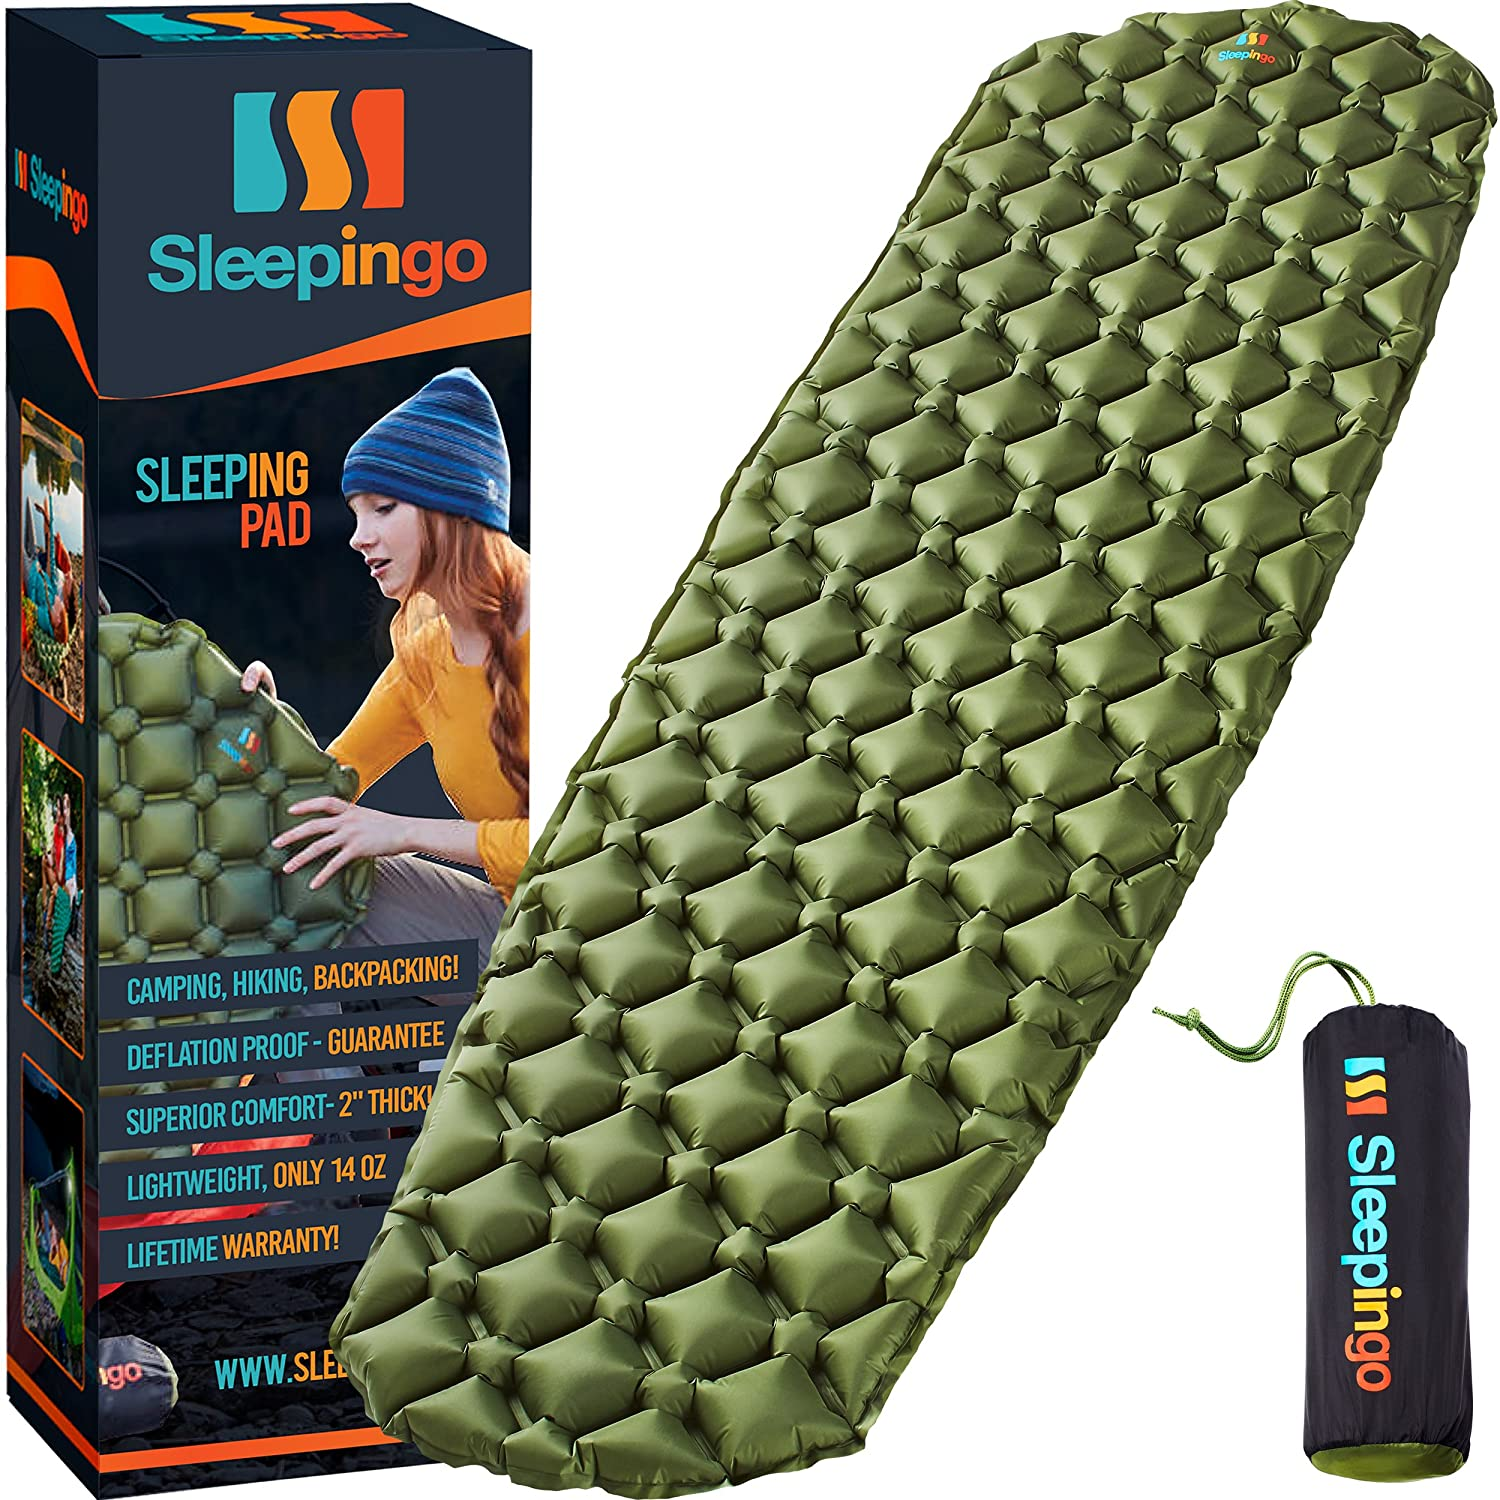 Sleepingo Camping Pad}